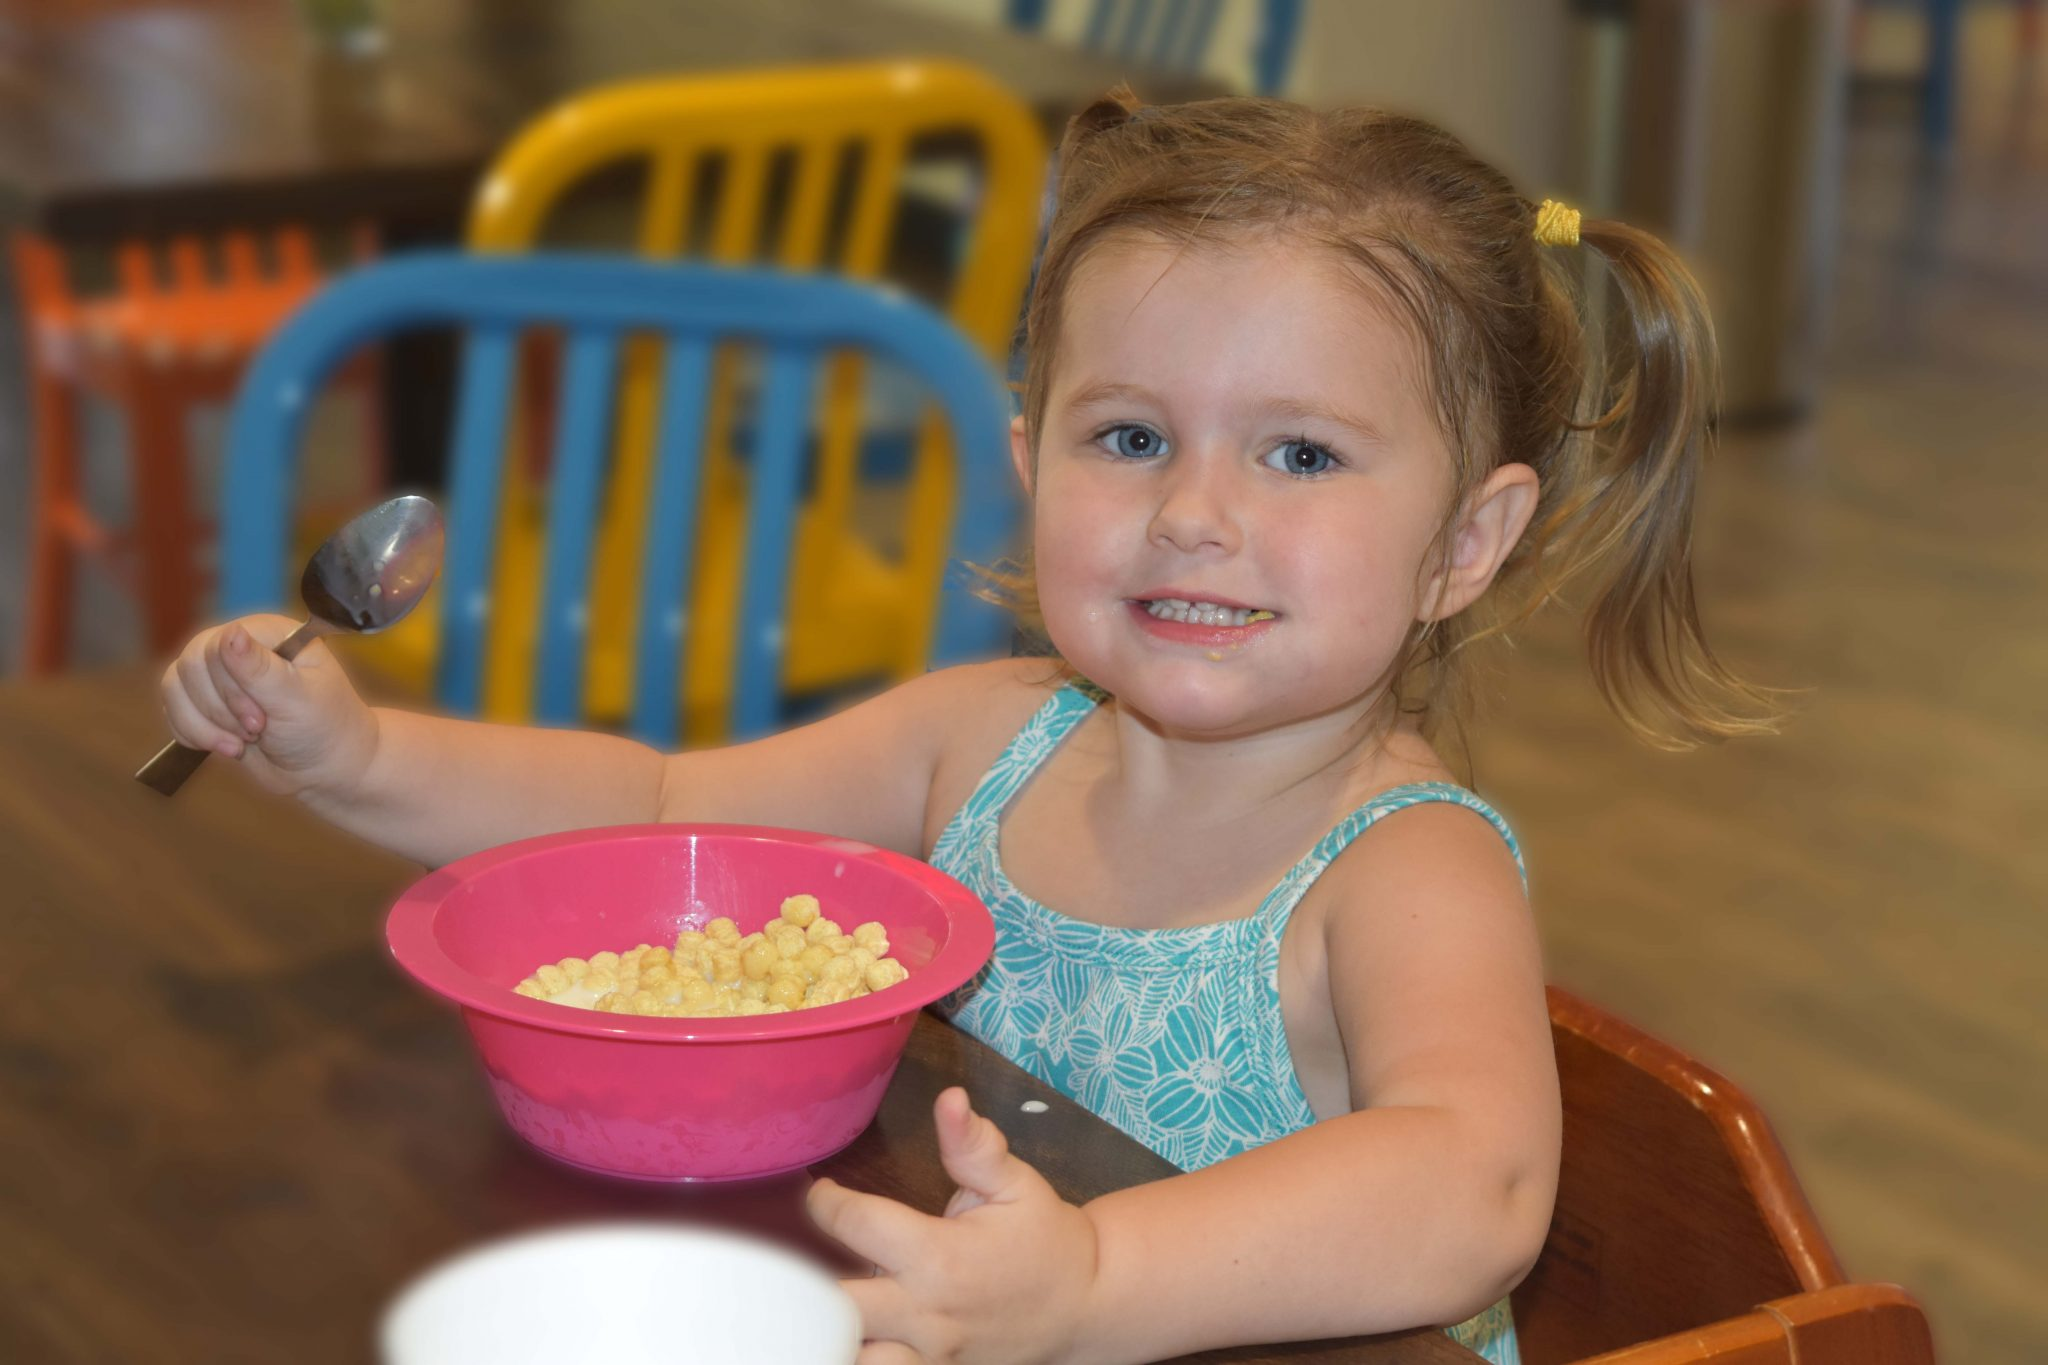 Girl enjoying a bowl of cereal in the kitchen